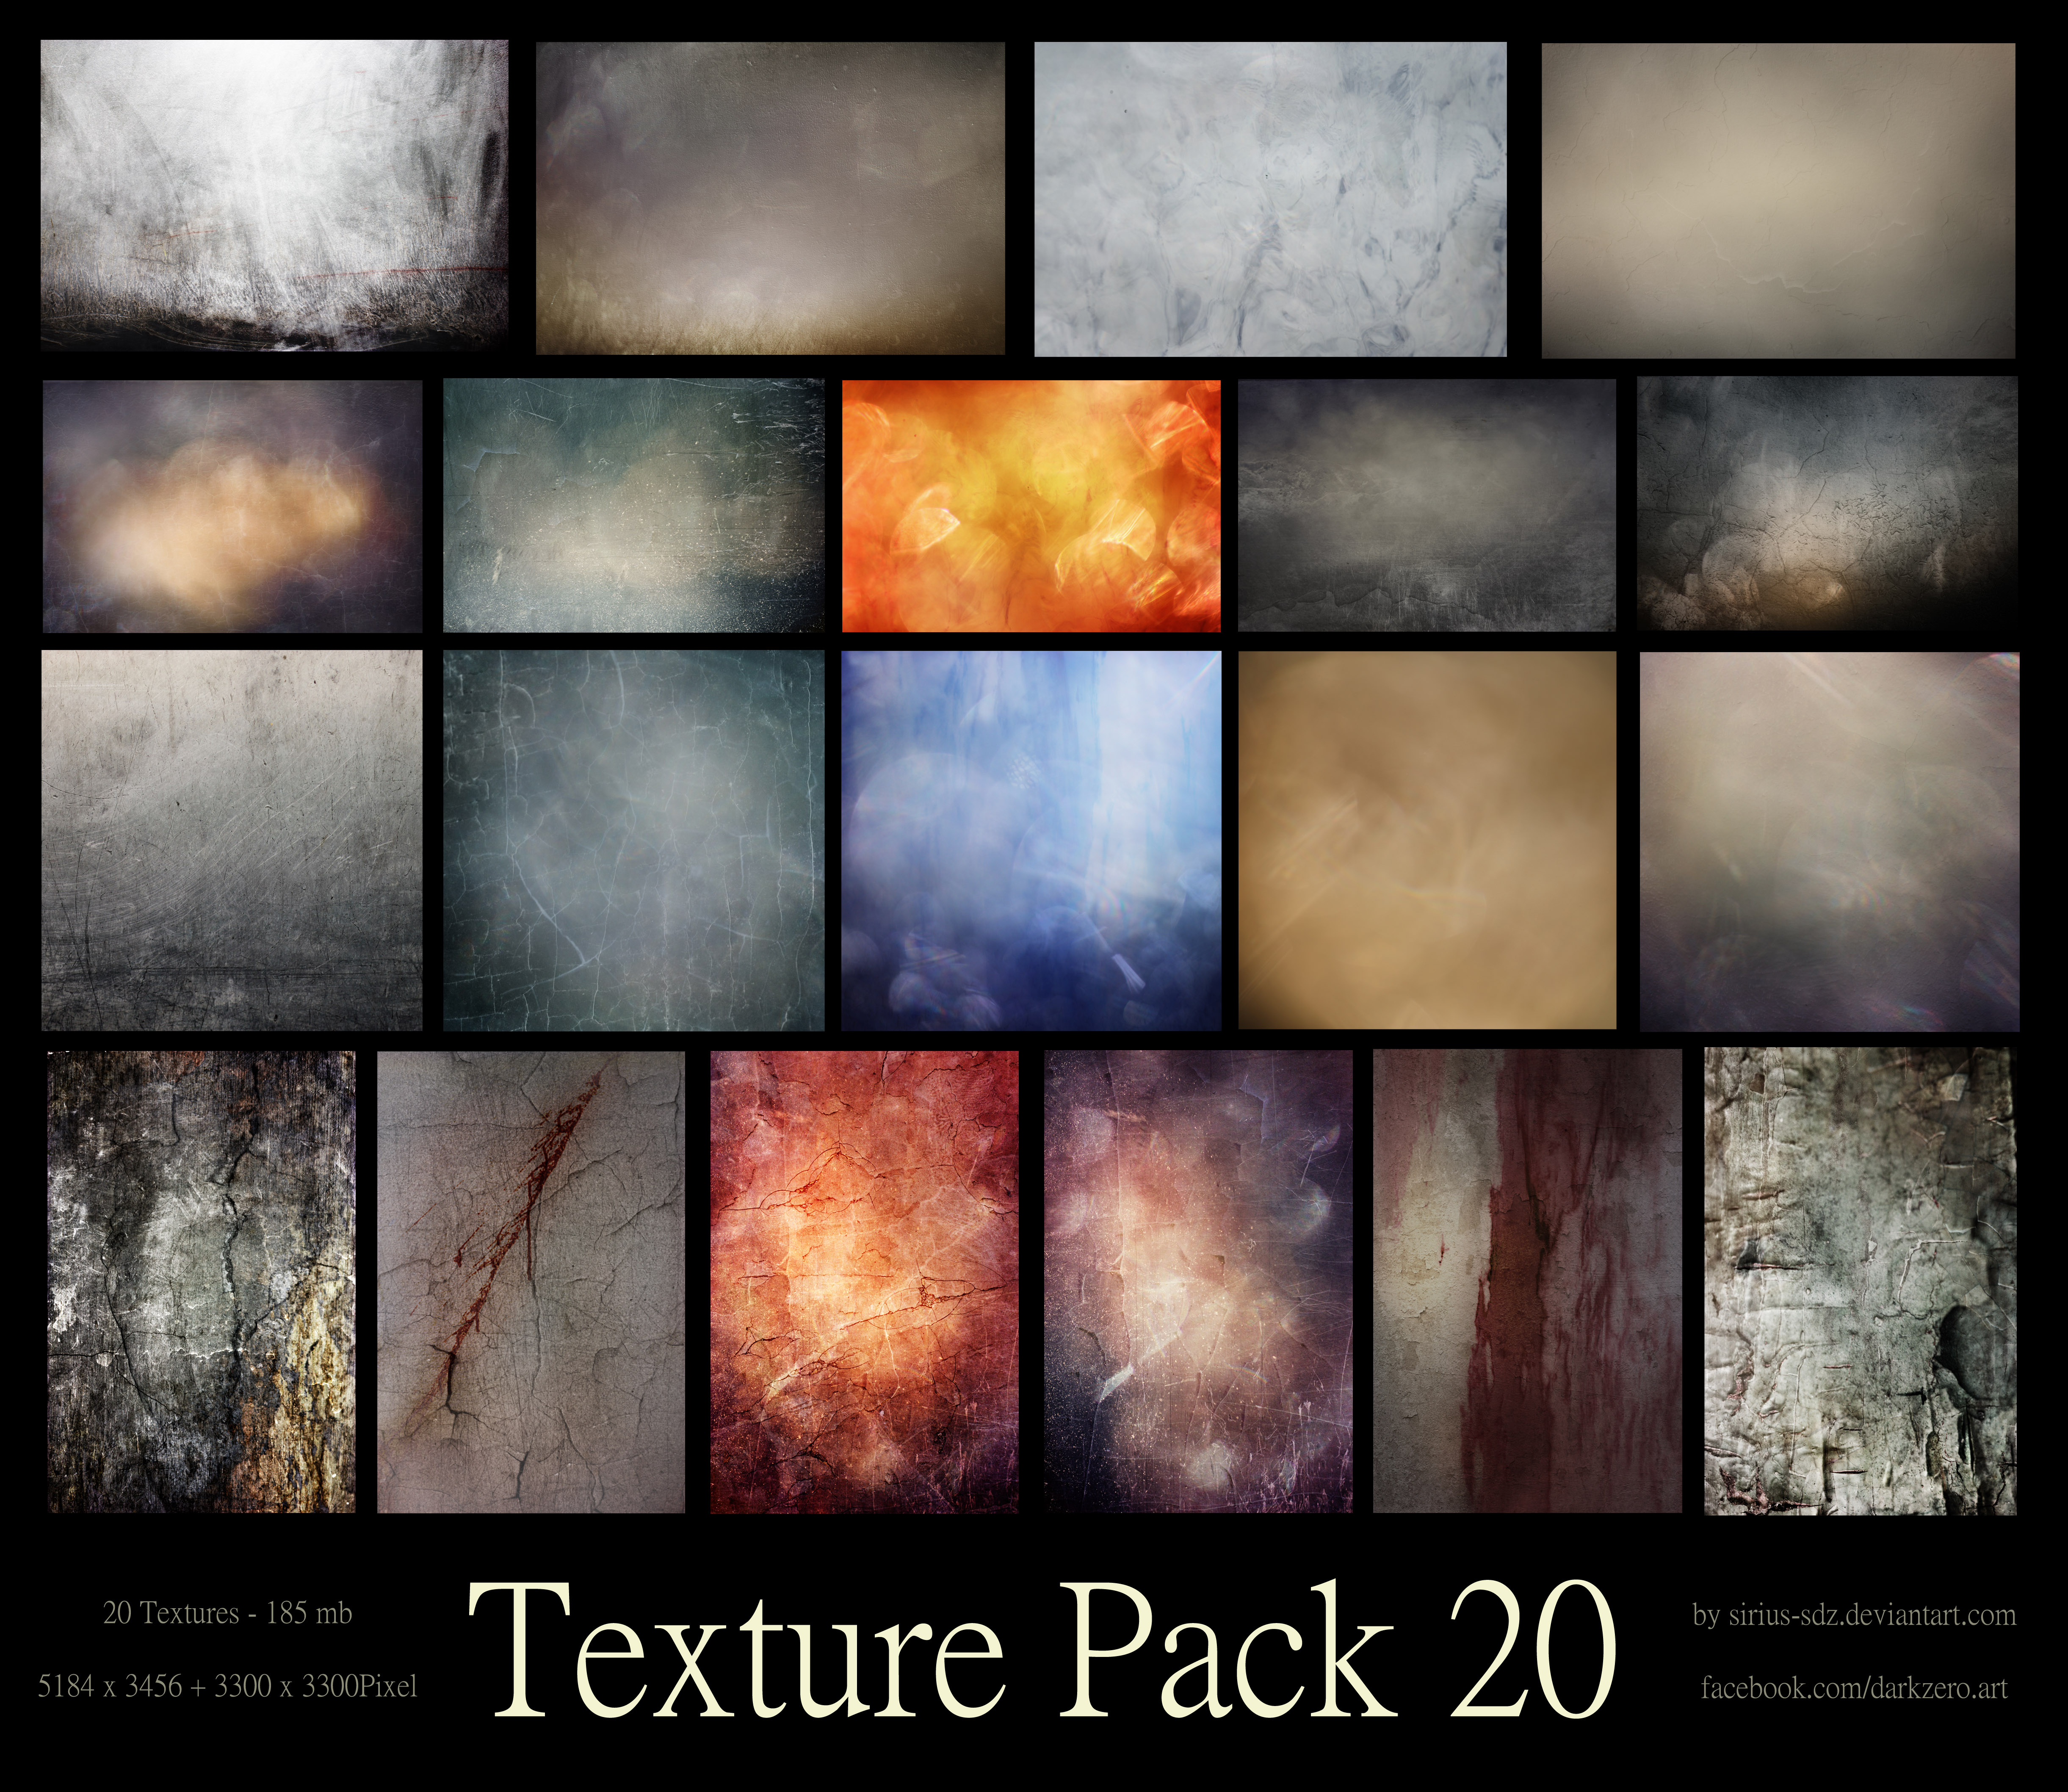 Texture Pack 20